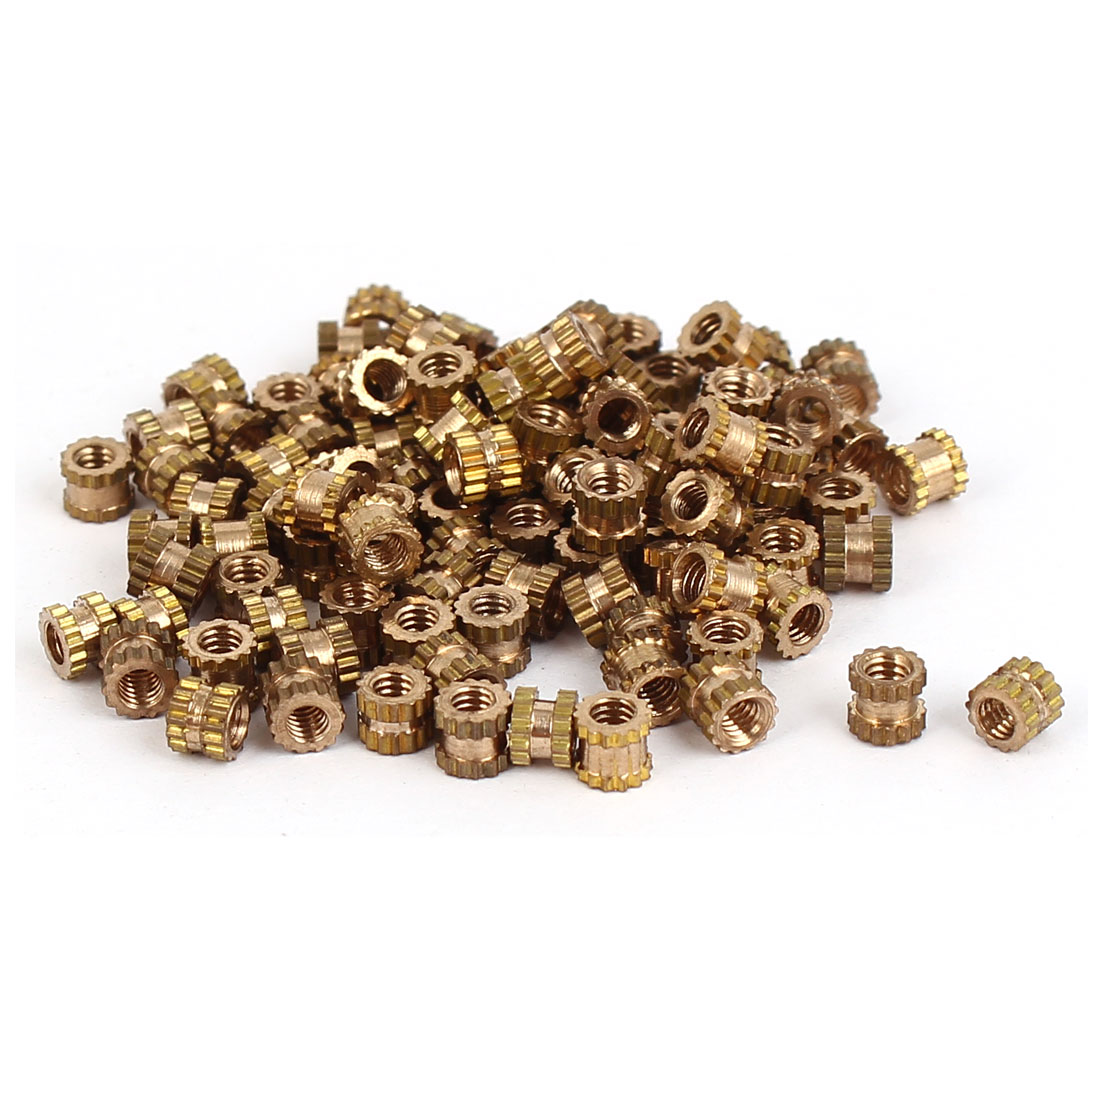 M2 x 3mm Brass Cylinder Knurled Threaded Round Insert Embedded Nuts 100PCS